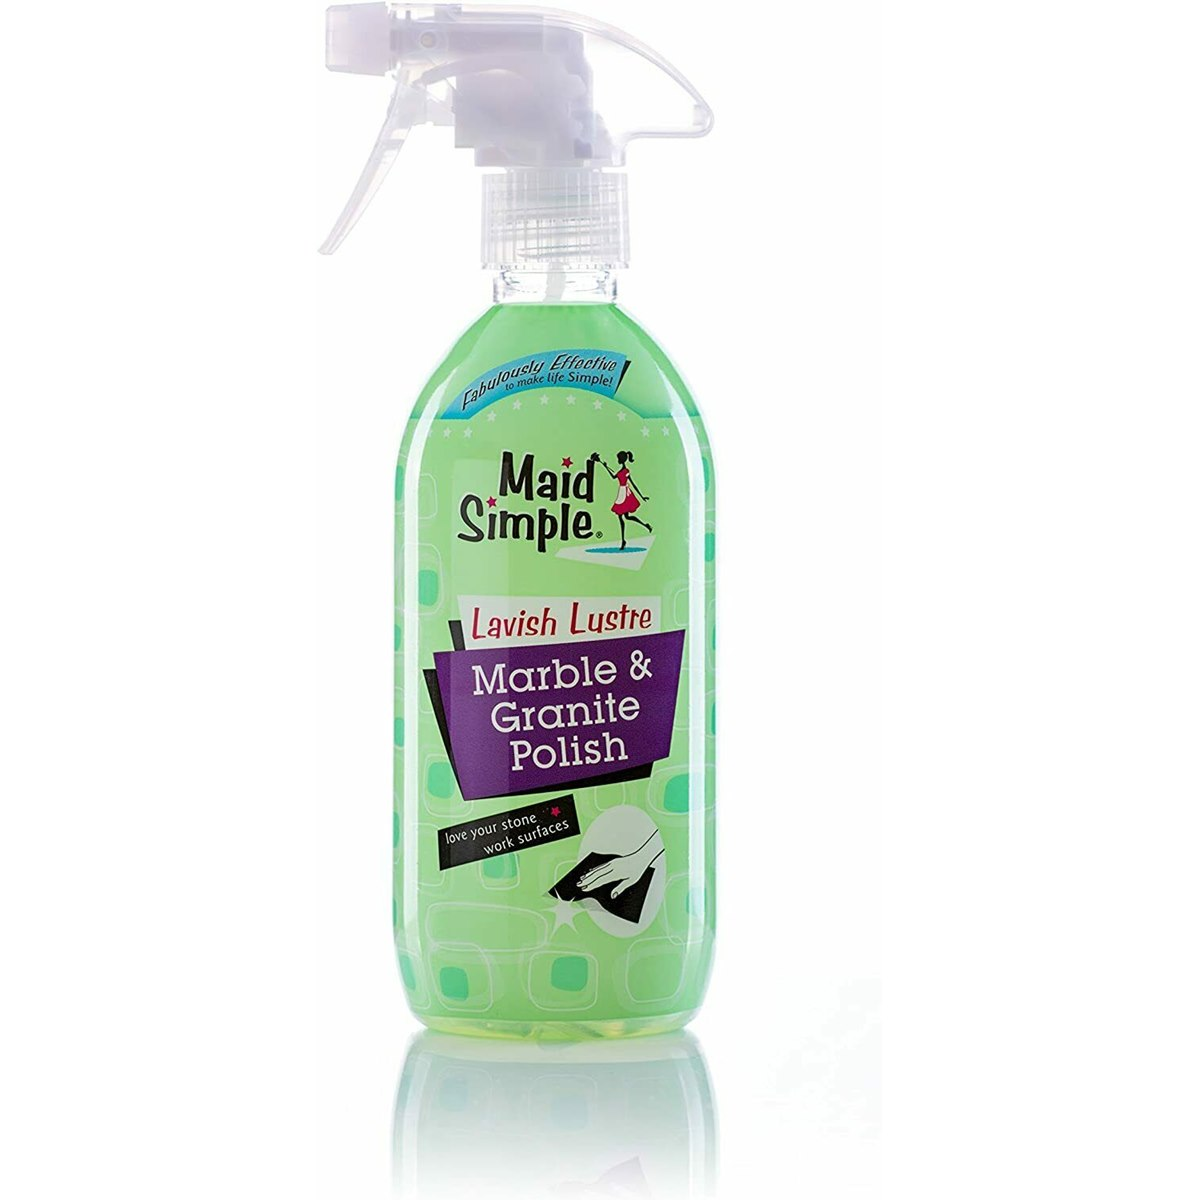 Maid Simple Marble and Granite Polish Spray 500ml